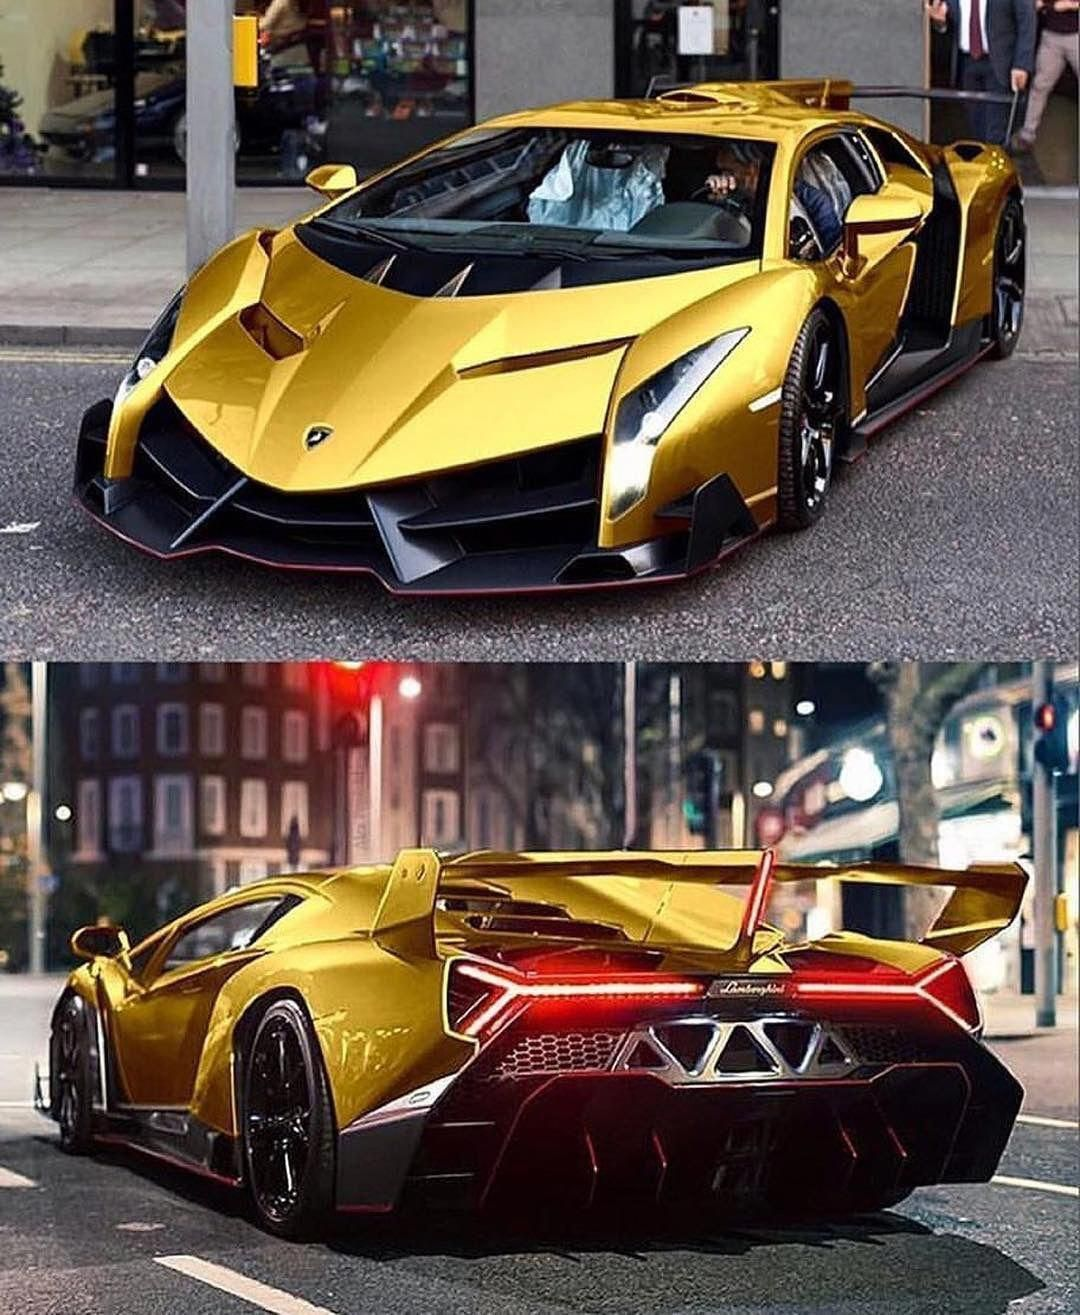 Luxury Cars And Super Cars Brands That Start With M Take A Look At Our Super Car Posts Sorted By Automobile Expensive Cars Sports Cars Luxury Fast Sports Cars